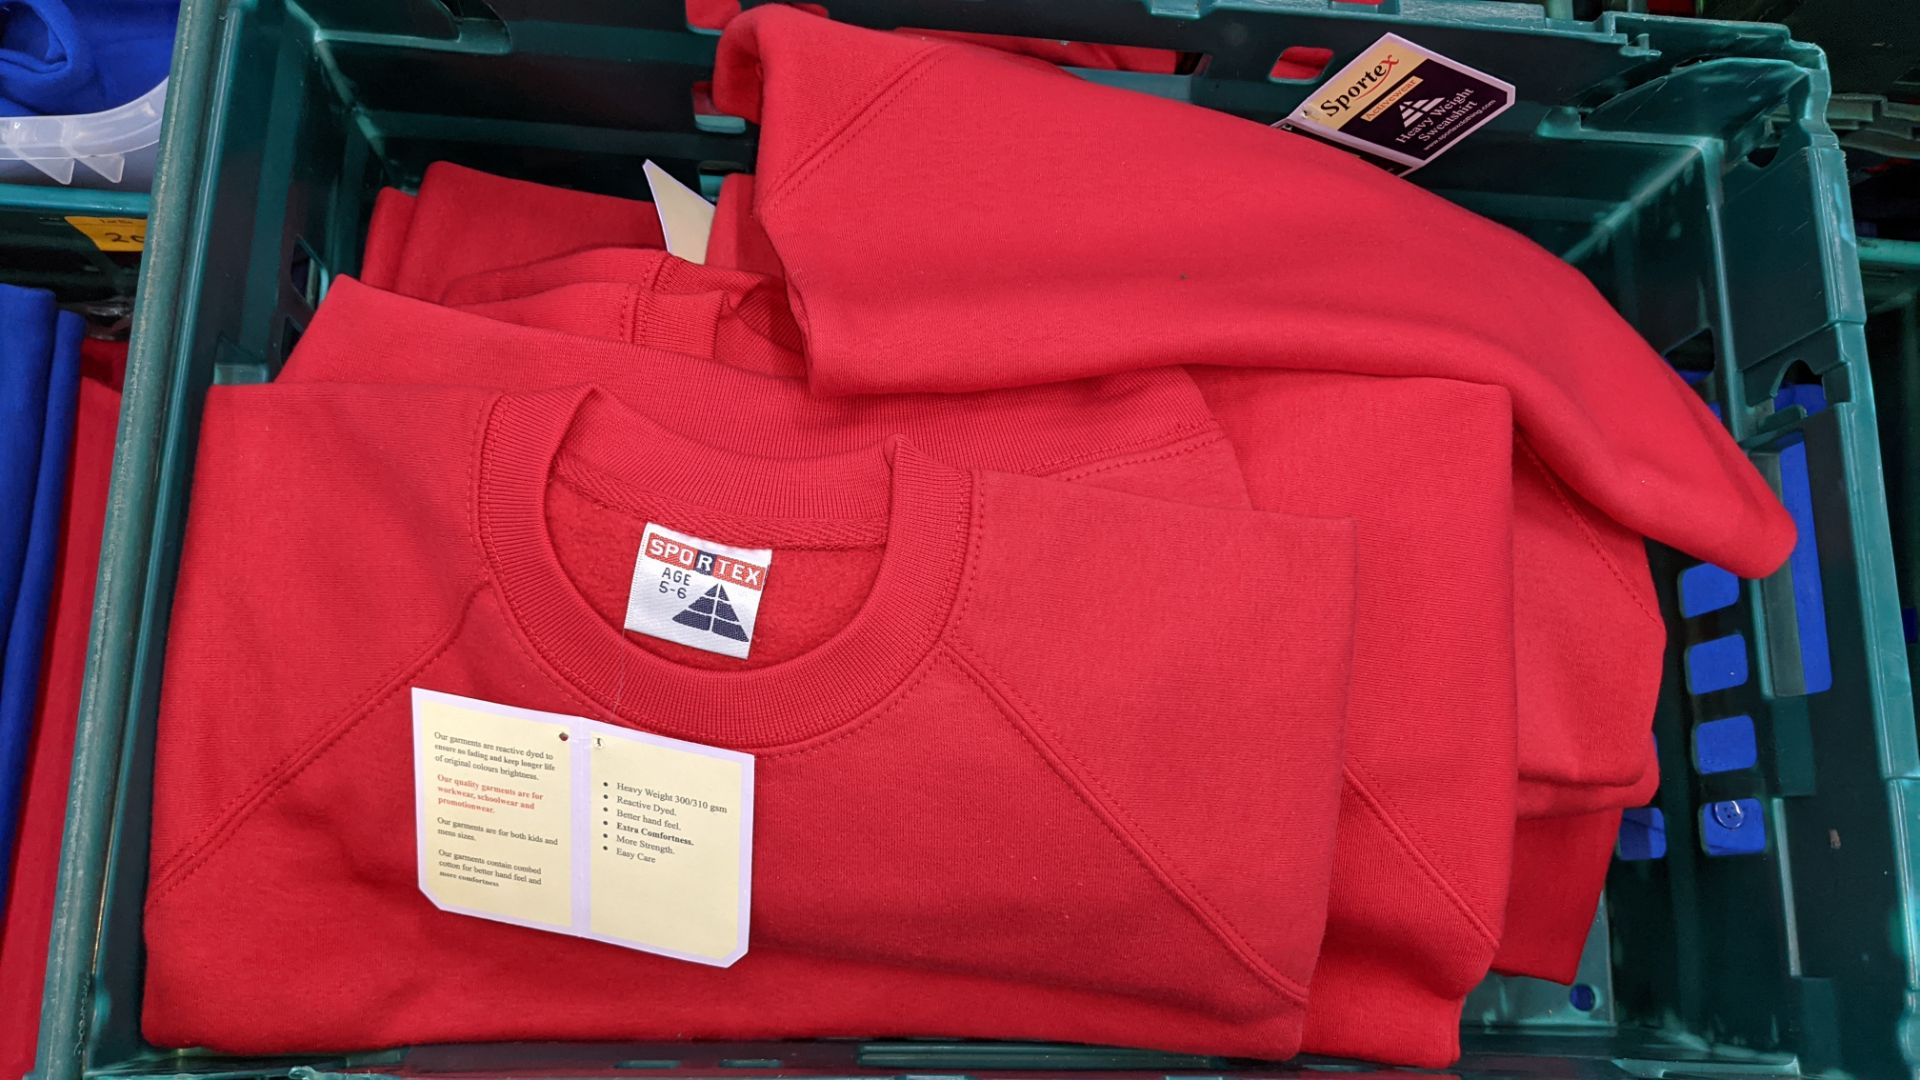 Approx 25 off Sportex children's assorted sweatshirts - the contents of 2 crates. NB crates exclude - Image 3 of 4